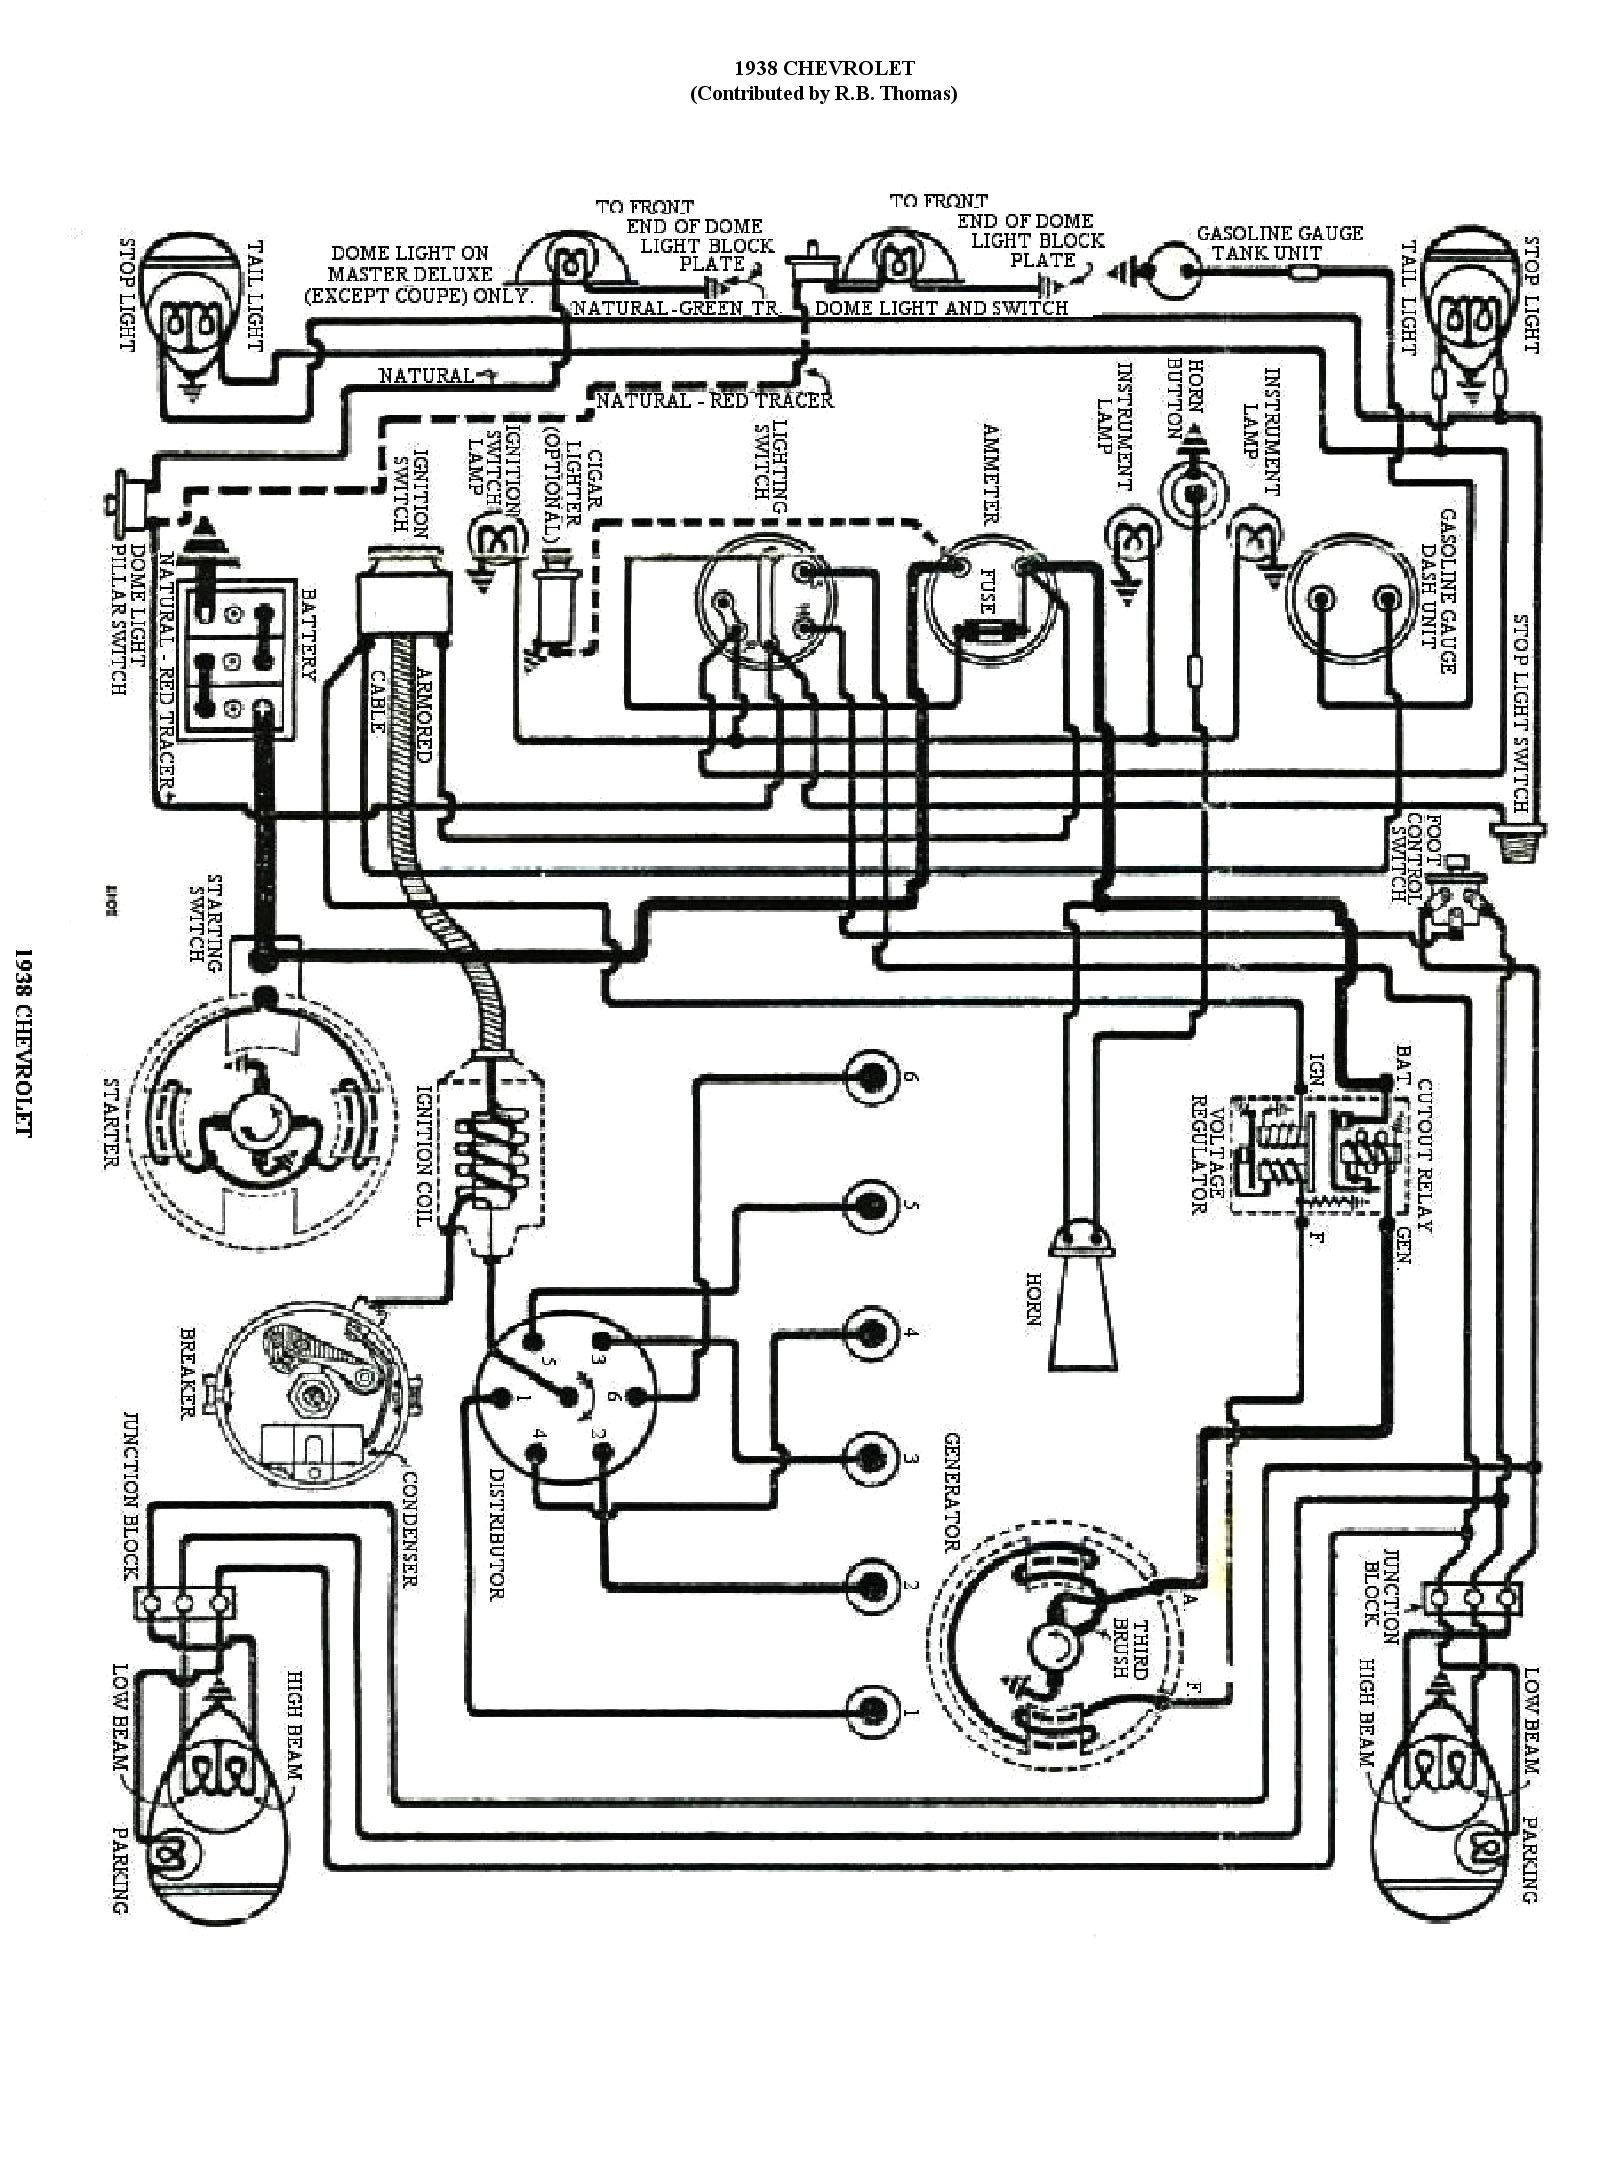 Wiring on 1931 model a wiring schematic